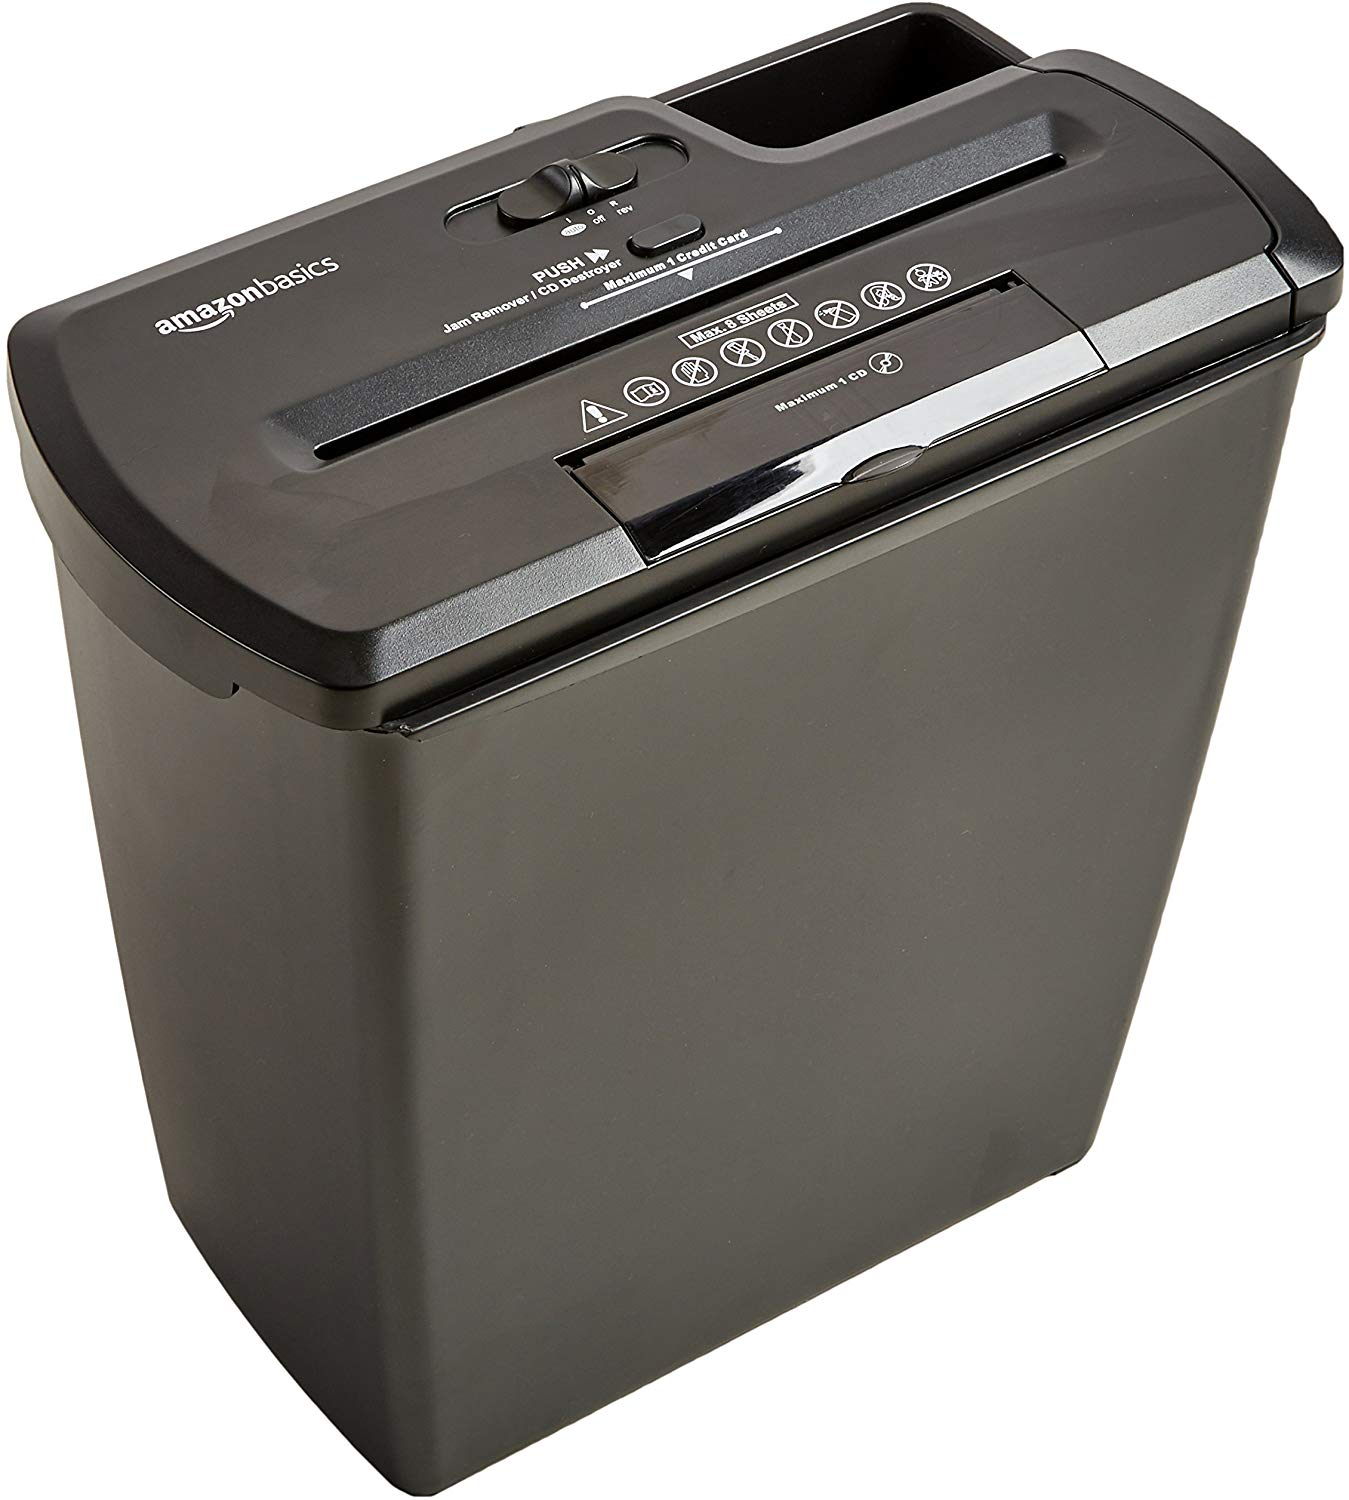 19% off AmazonBasics 8 Sheet Strip Cut Shredder with CD Shred